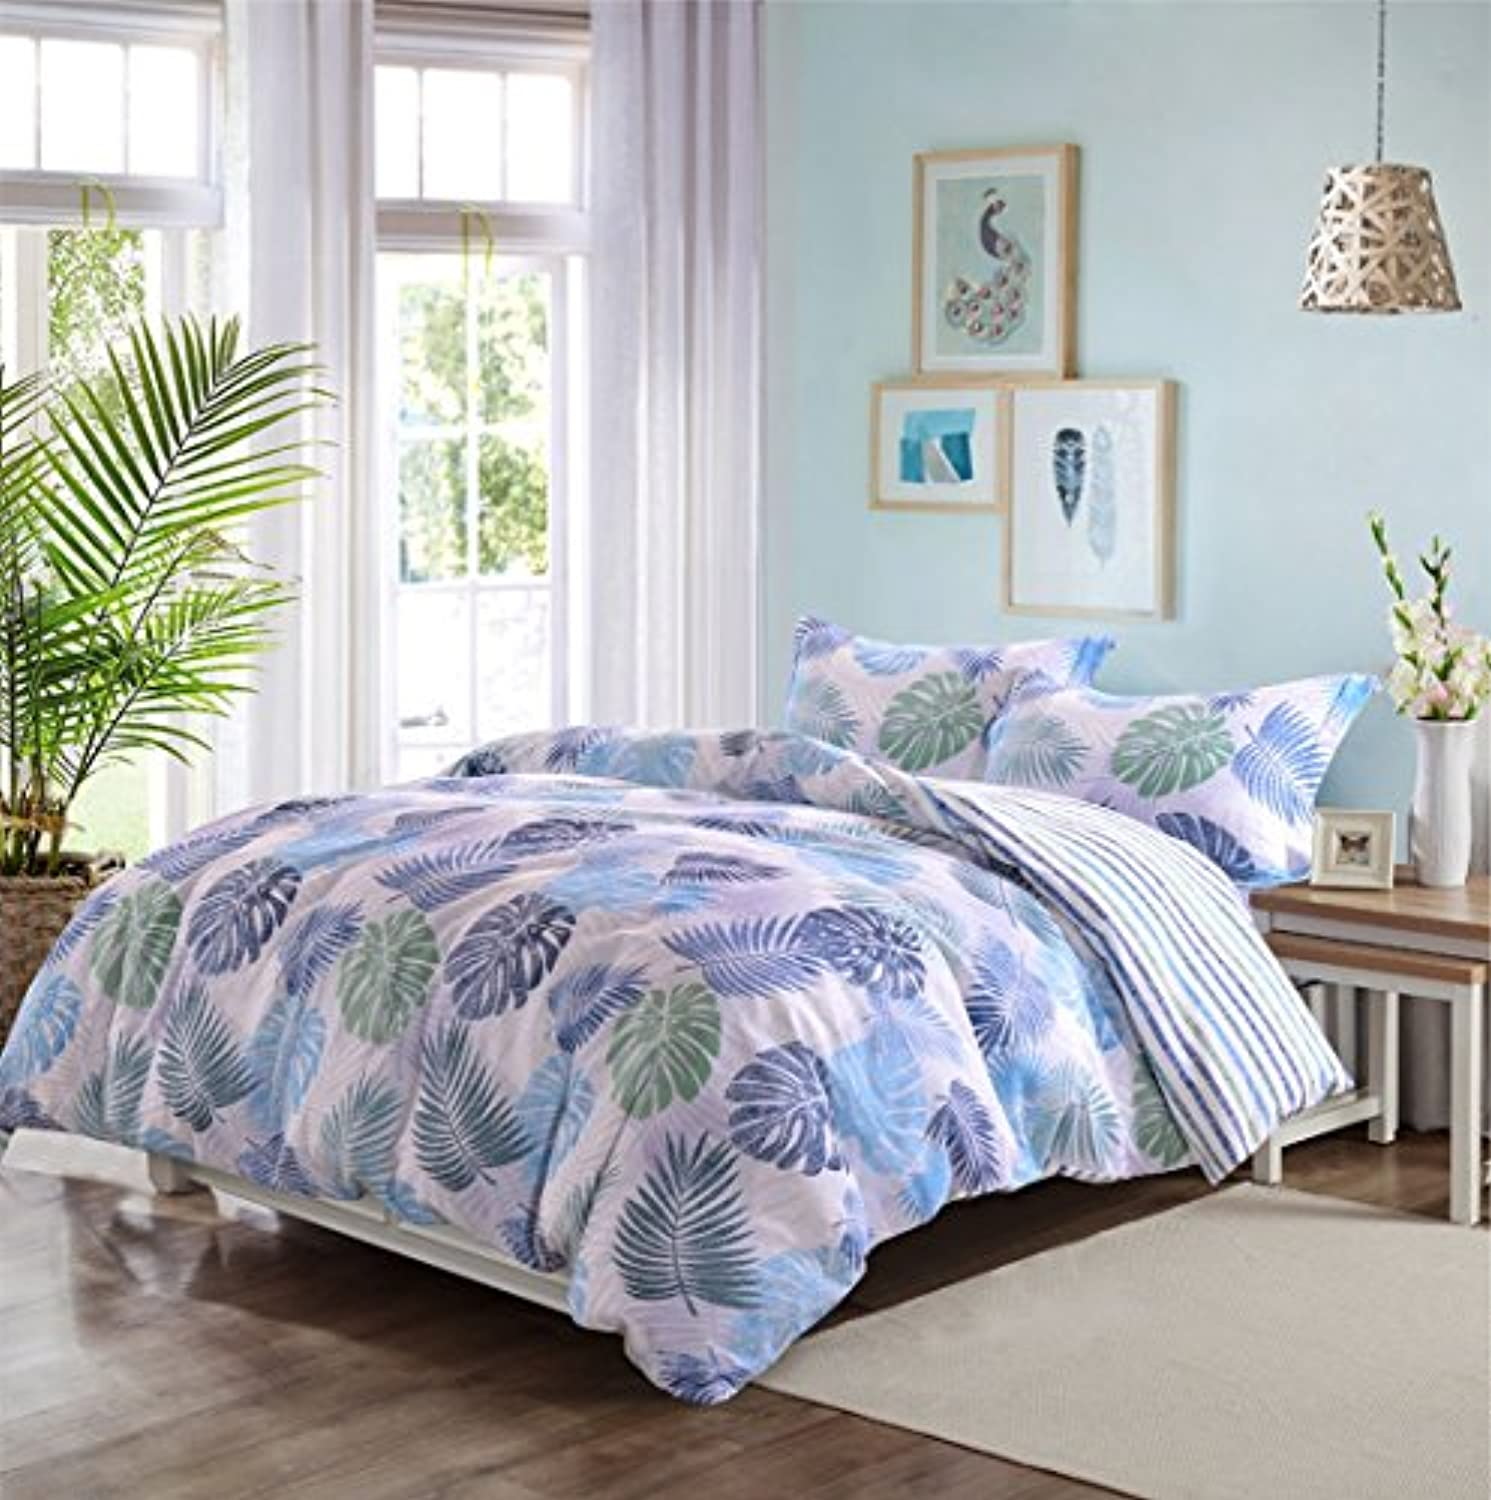 (King, Leaf) - Luxurious Quality Bamboo Microfiber Floral Duvet Cover King 3 Pieces Set - Hypoallergenic Breathable Comforter Case - Quilt Cover with Zipper Closure Corner Ties, Printed Leaves Hawaiian Style